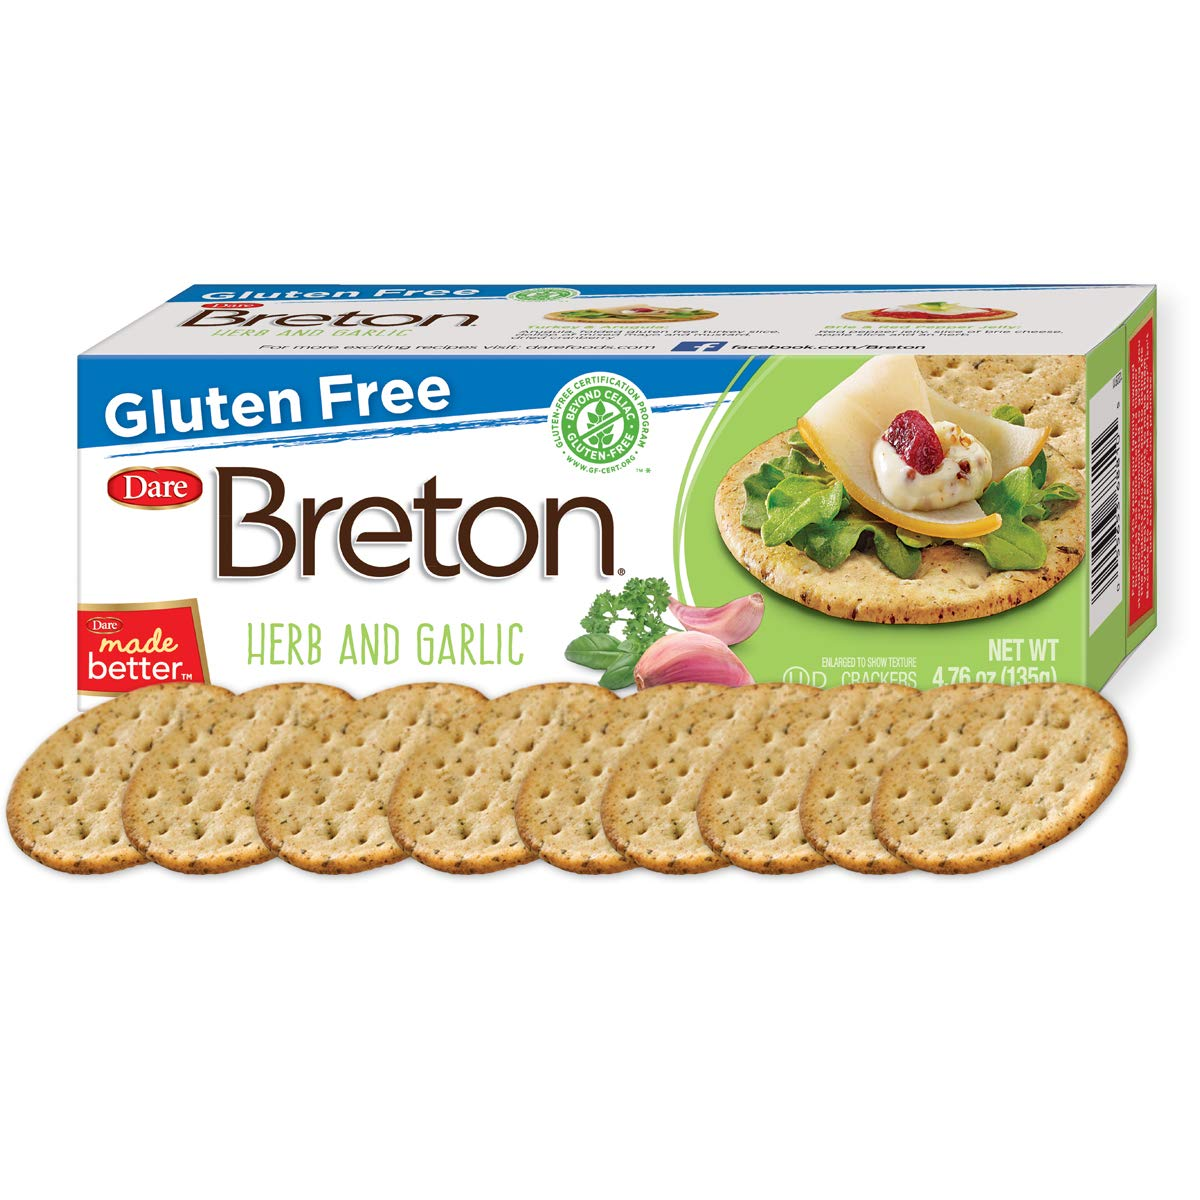 Dare Breton Gluten Free Entertaining Crackers, Herb and Garlic - Gluten Free Party Snacks with no Artificial Colors or Flavors - 4.76 Ounces (Pack of 6) by Dare